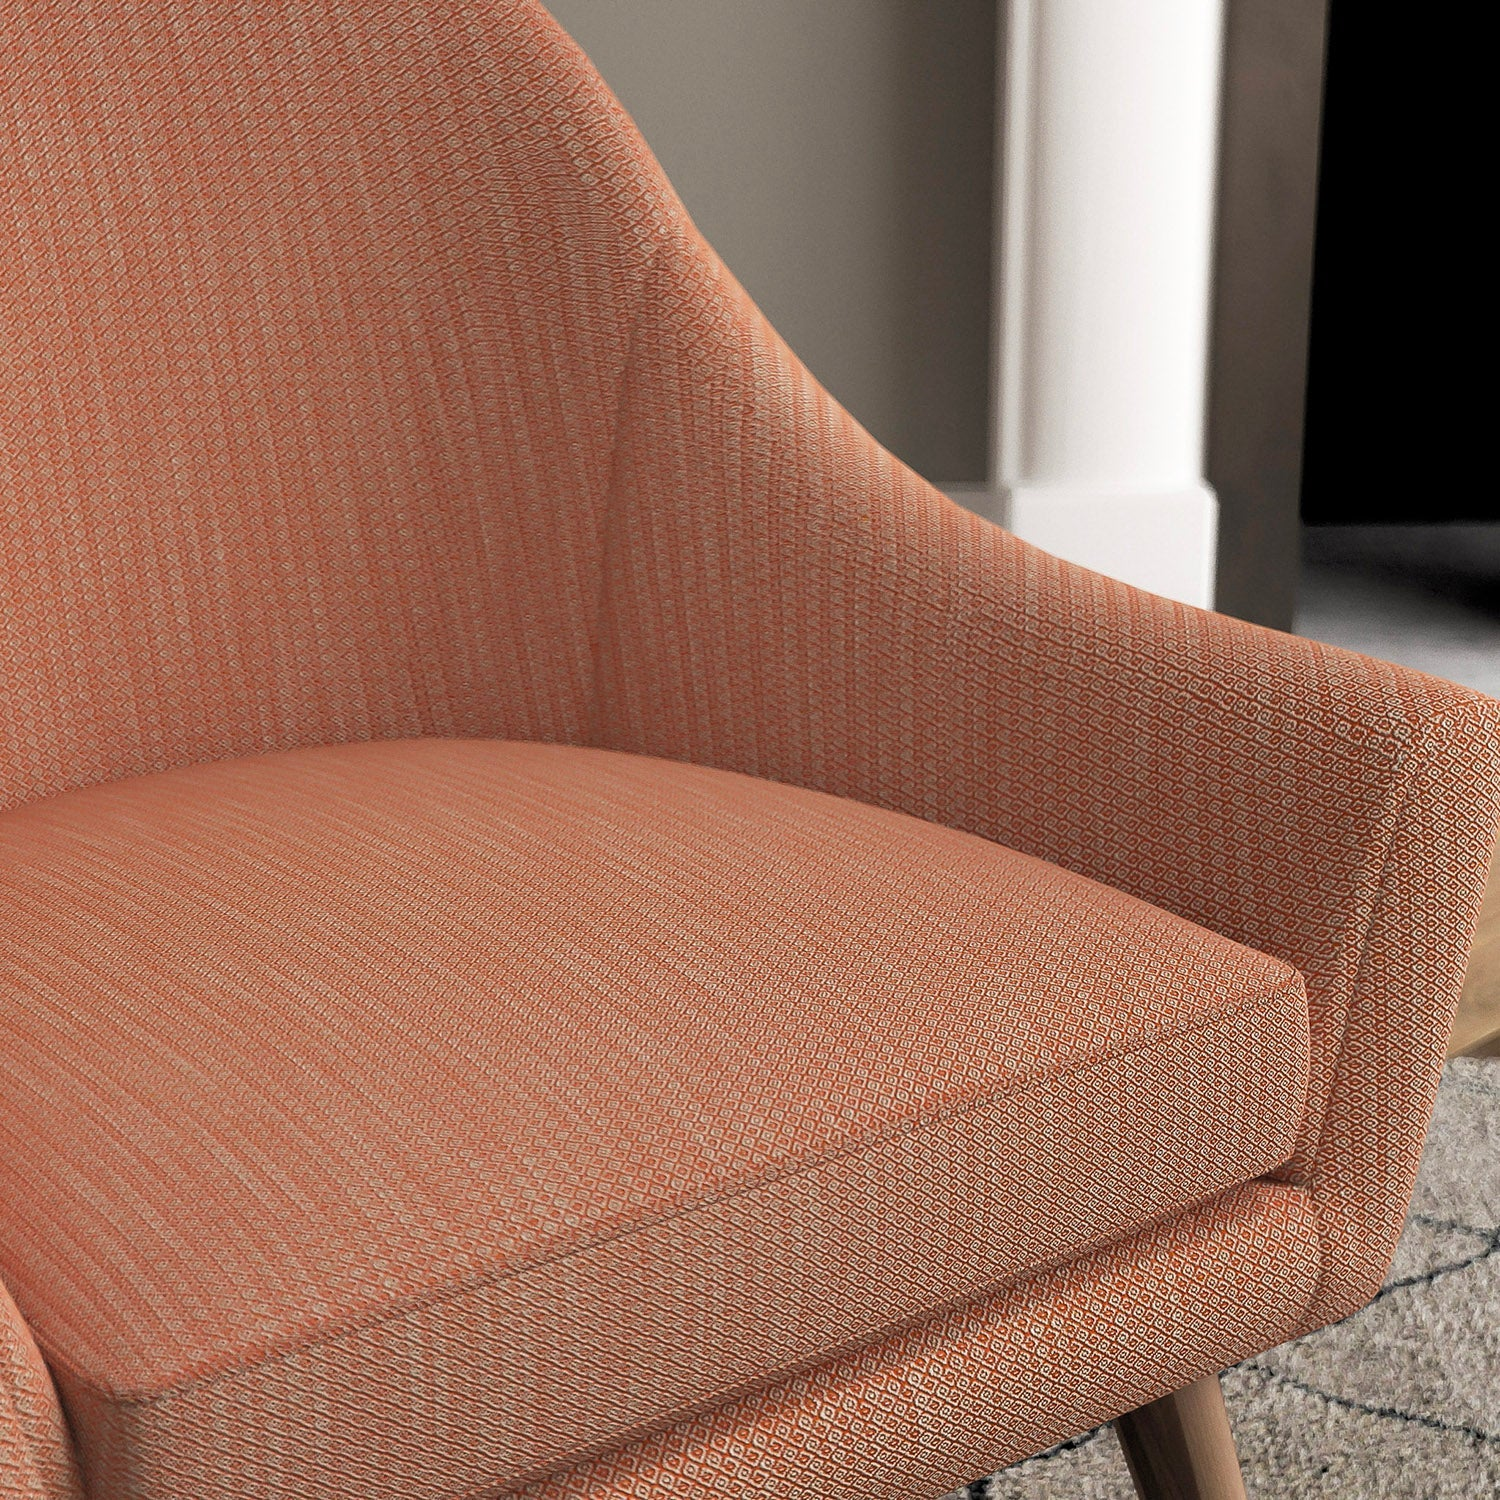 Chair with a orange and neutral upholstery fabric with a small diamond weave fabric